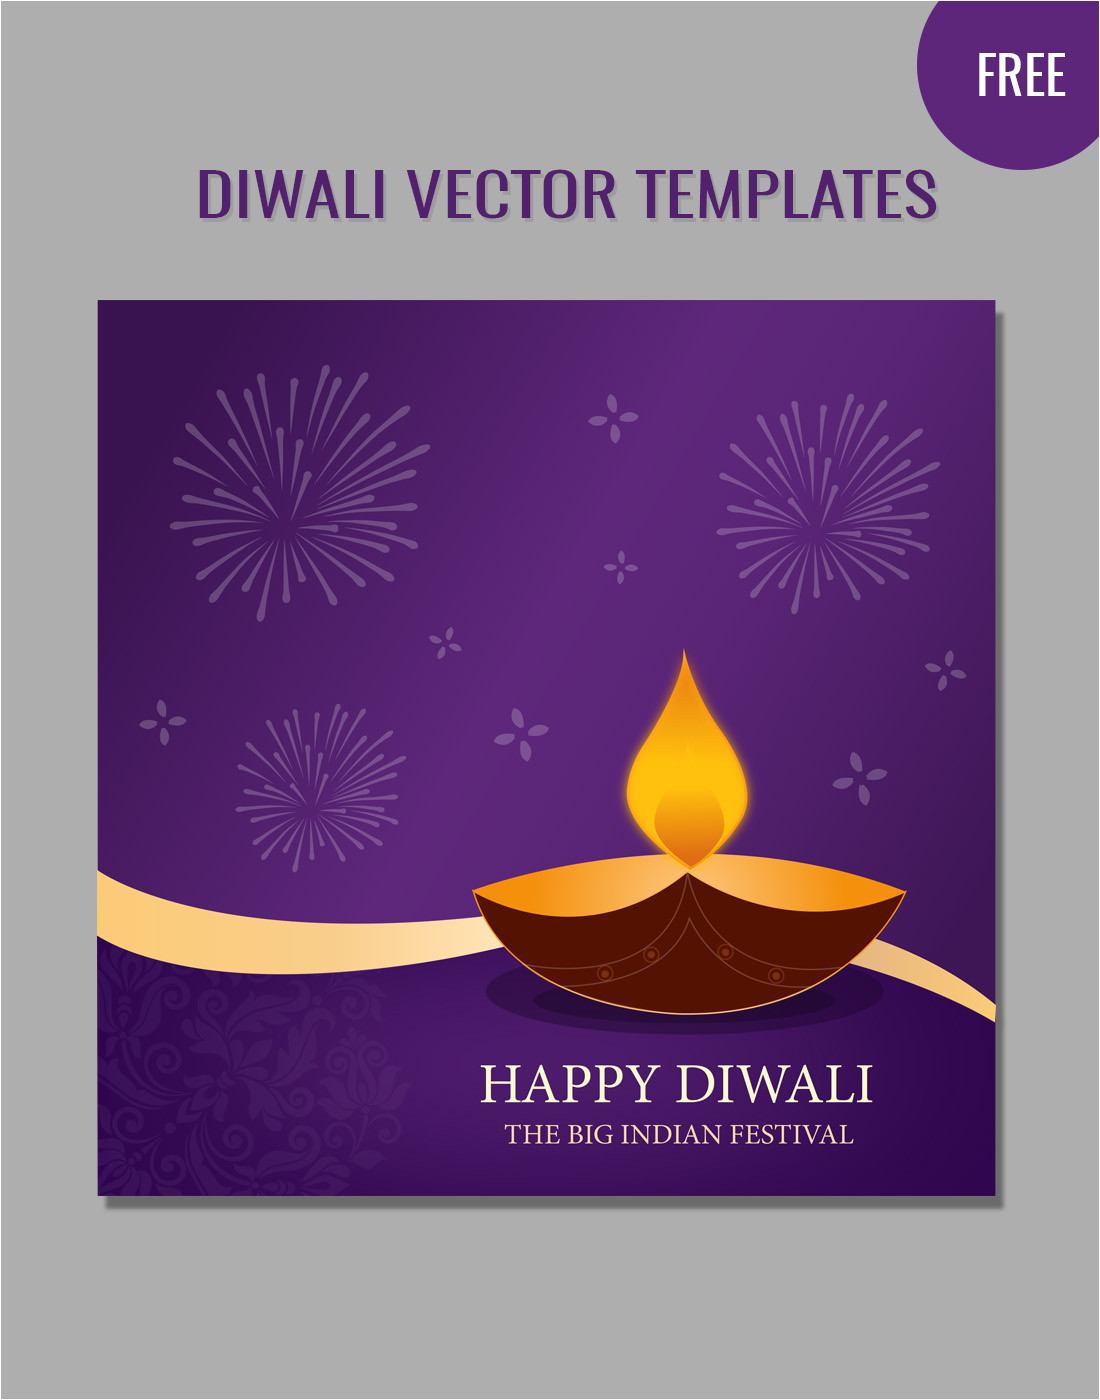 diwali vector templates